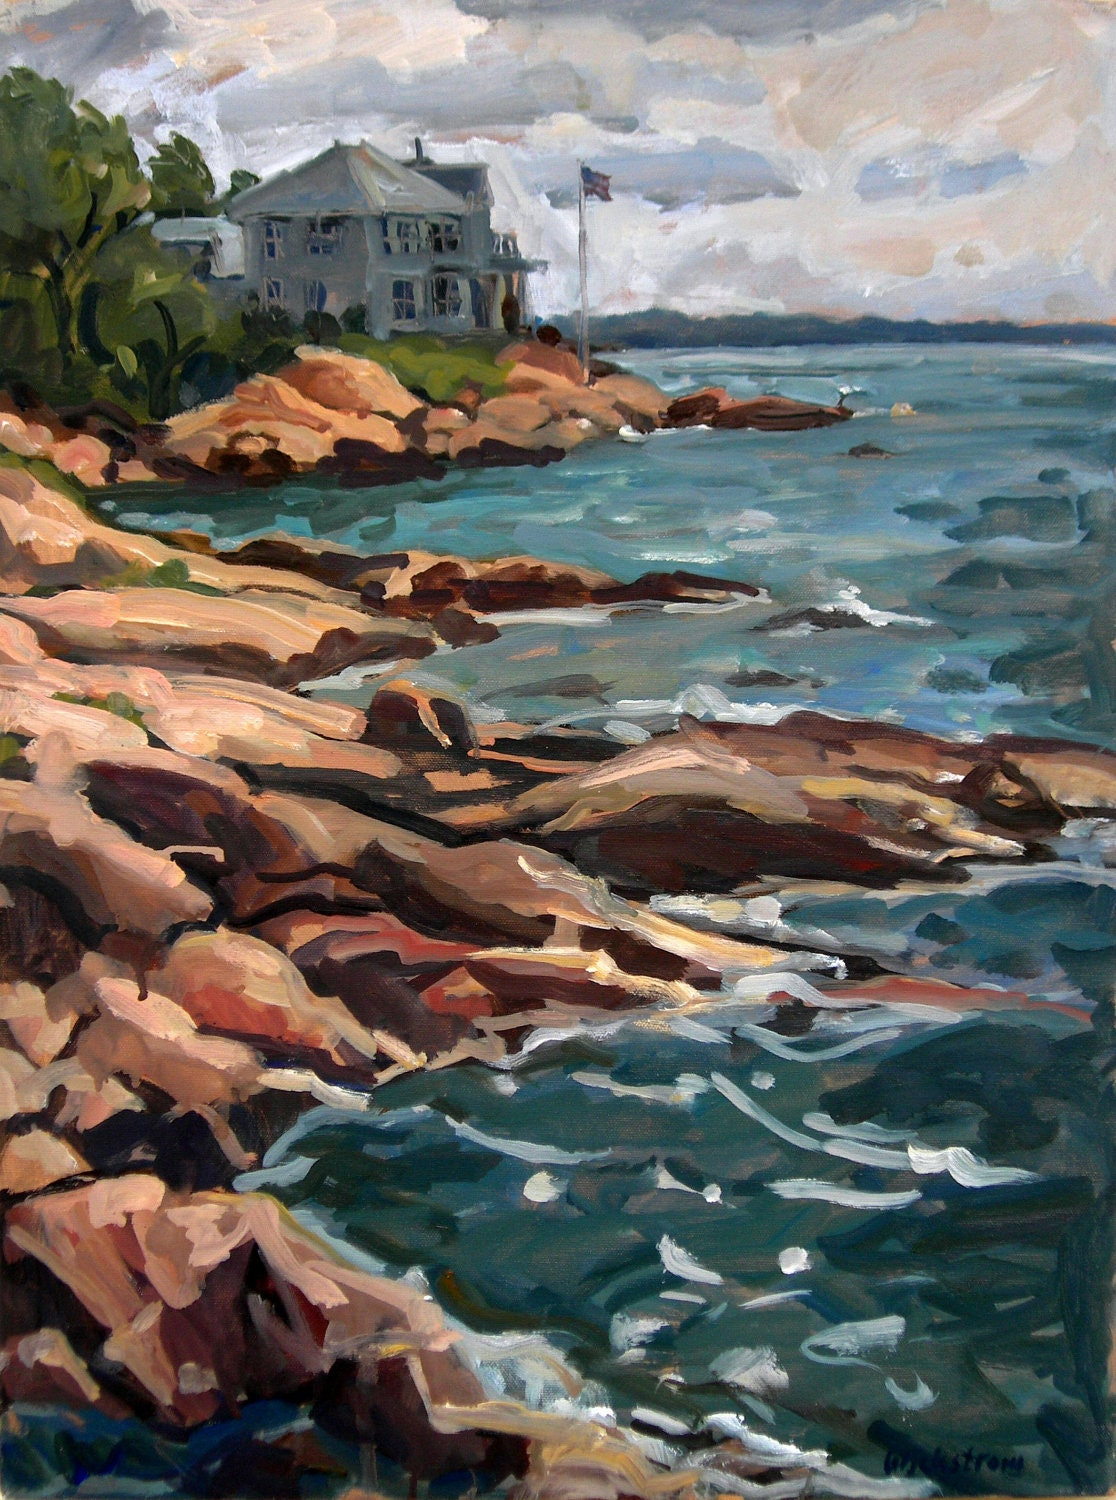 Original Oil Painting Landscape, From Rockport, Cape Ann. Large Plein Air Impressionist Seascape on Canvas